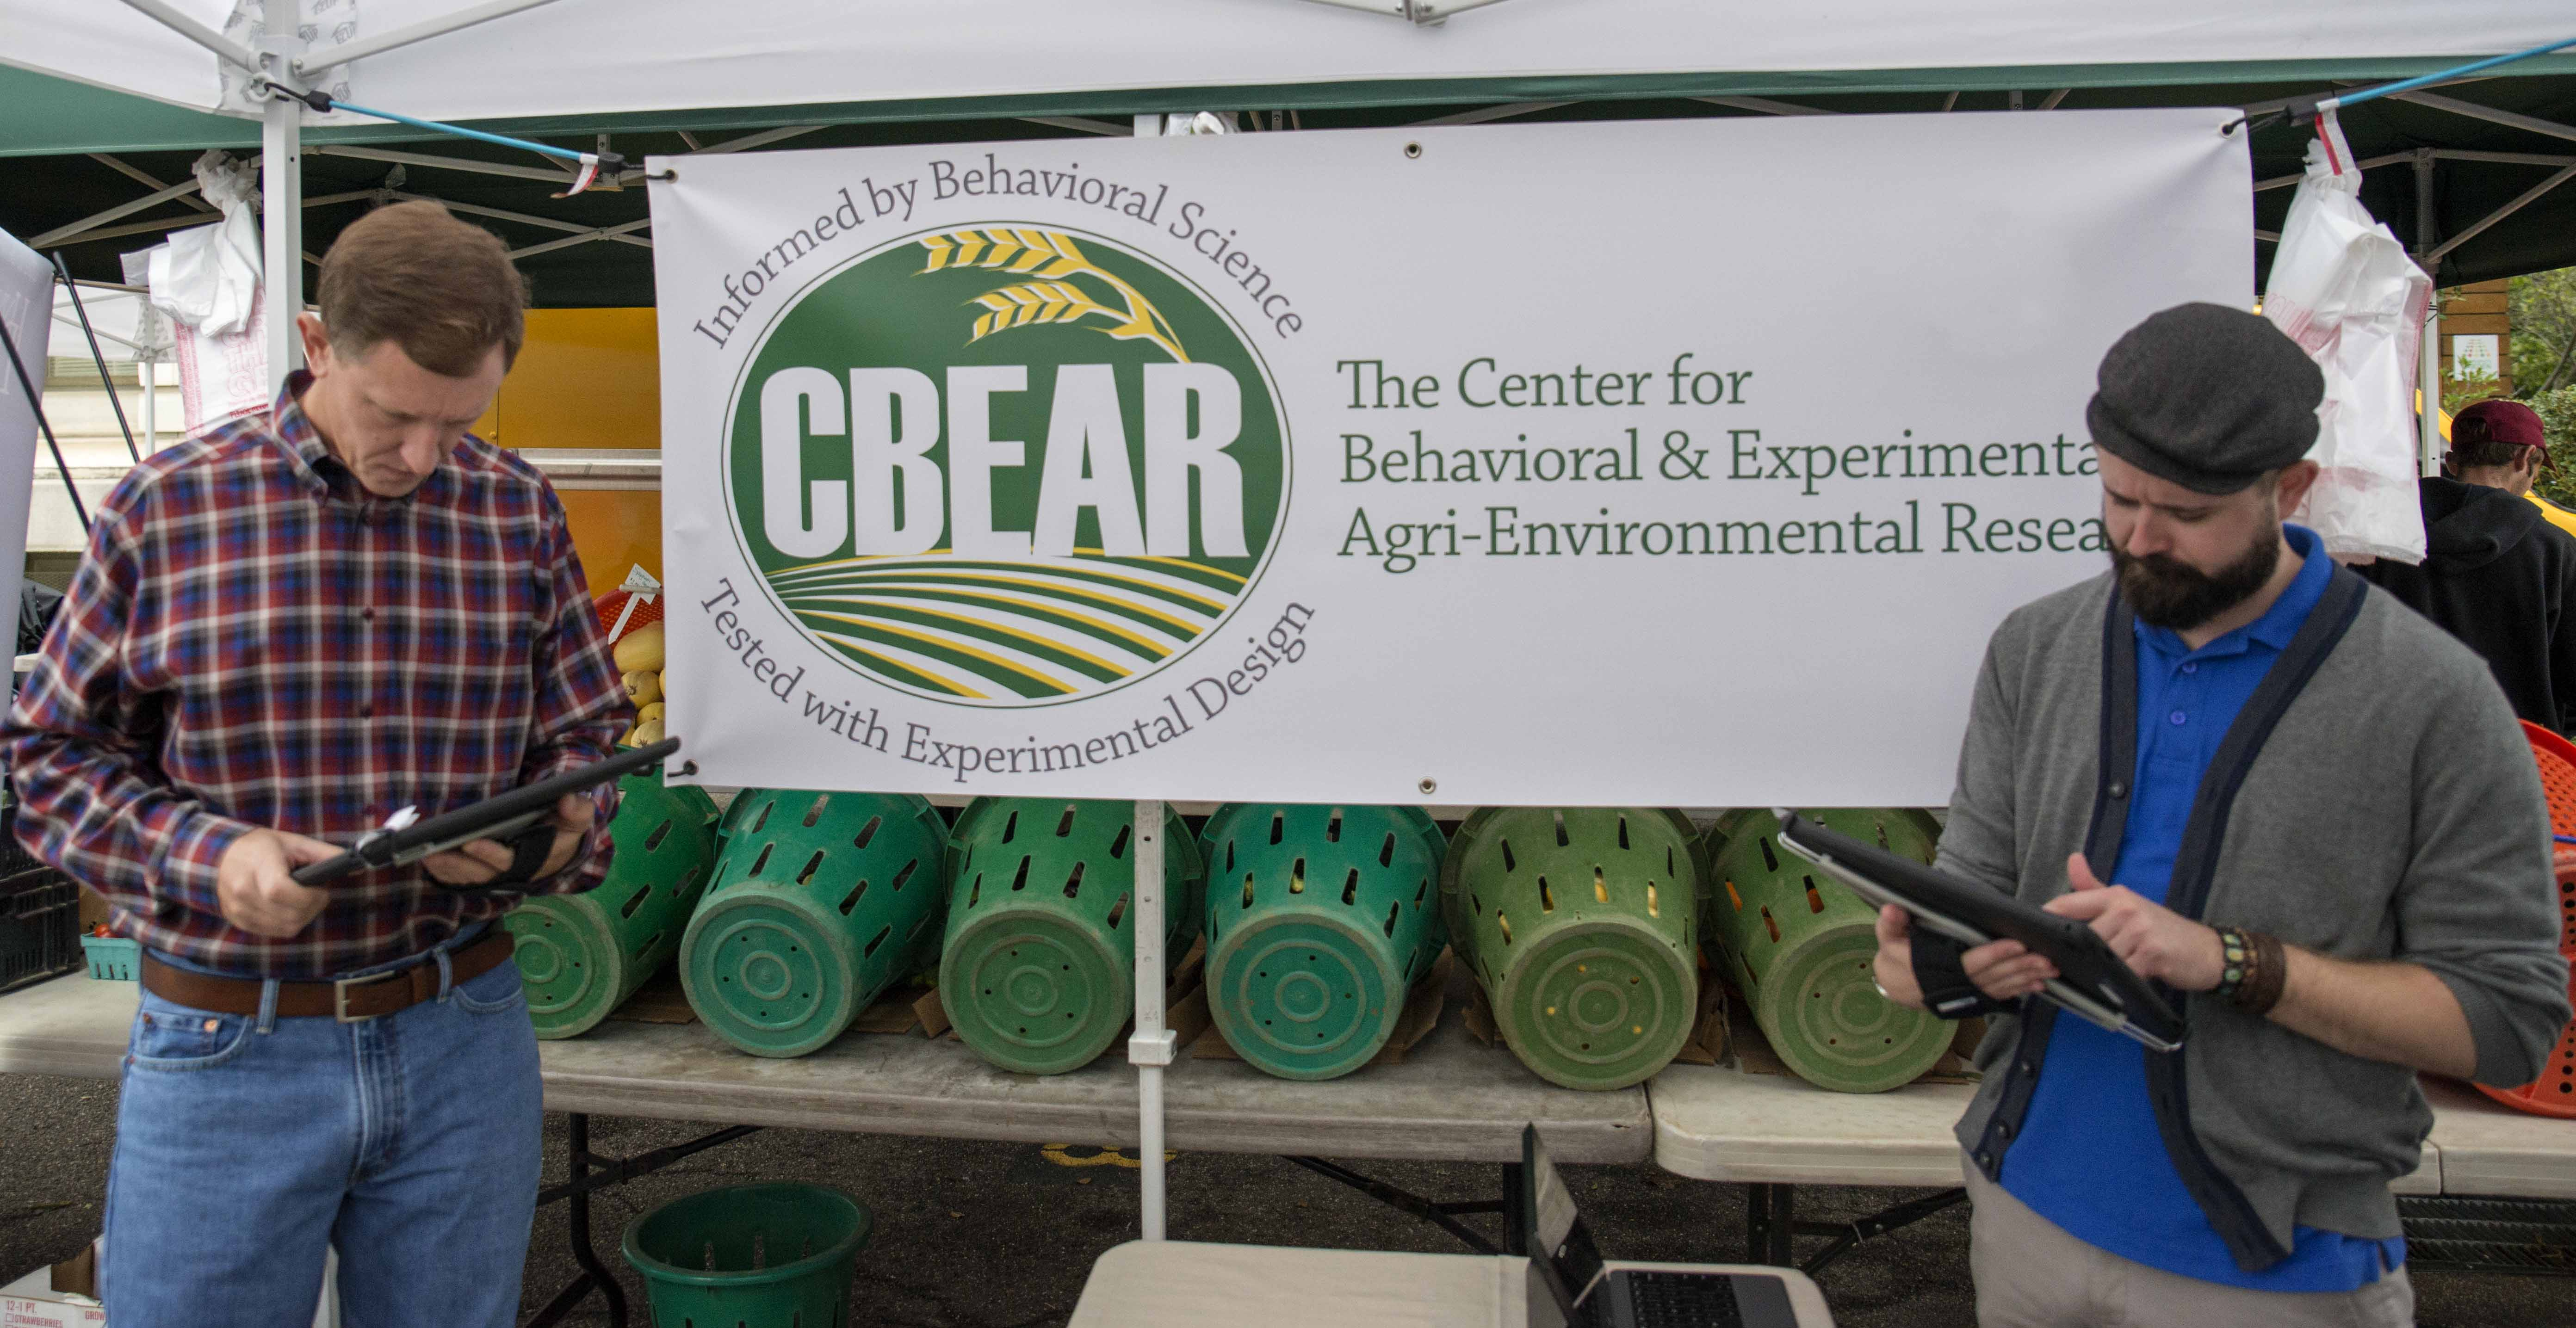 PRESS RELEASE: CBEAR receives new grants from USDA-NIFA